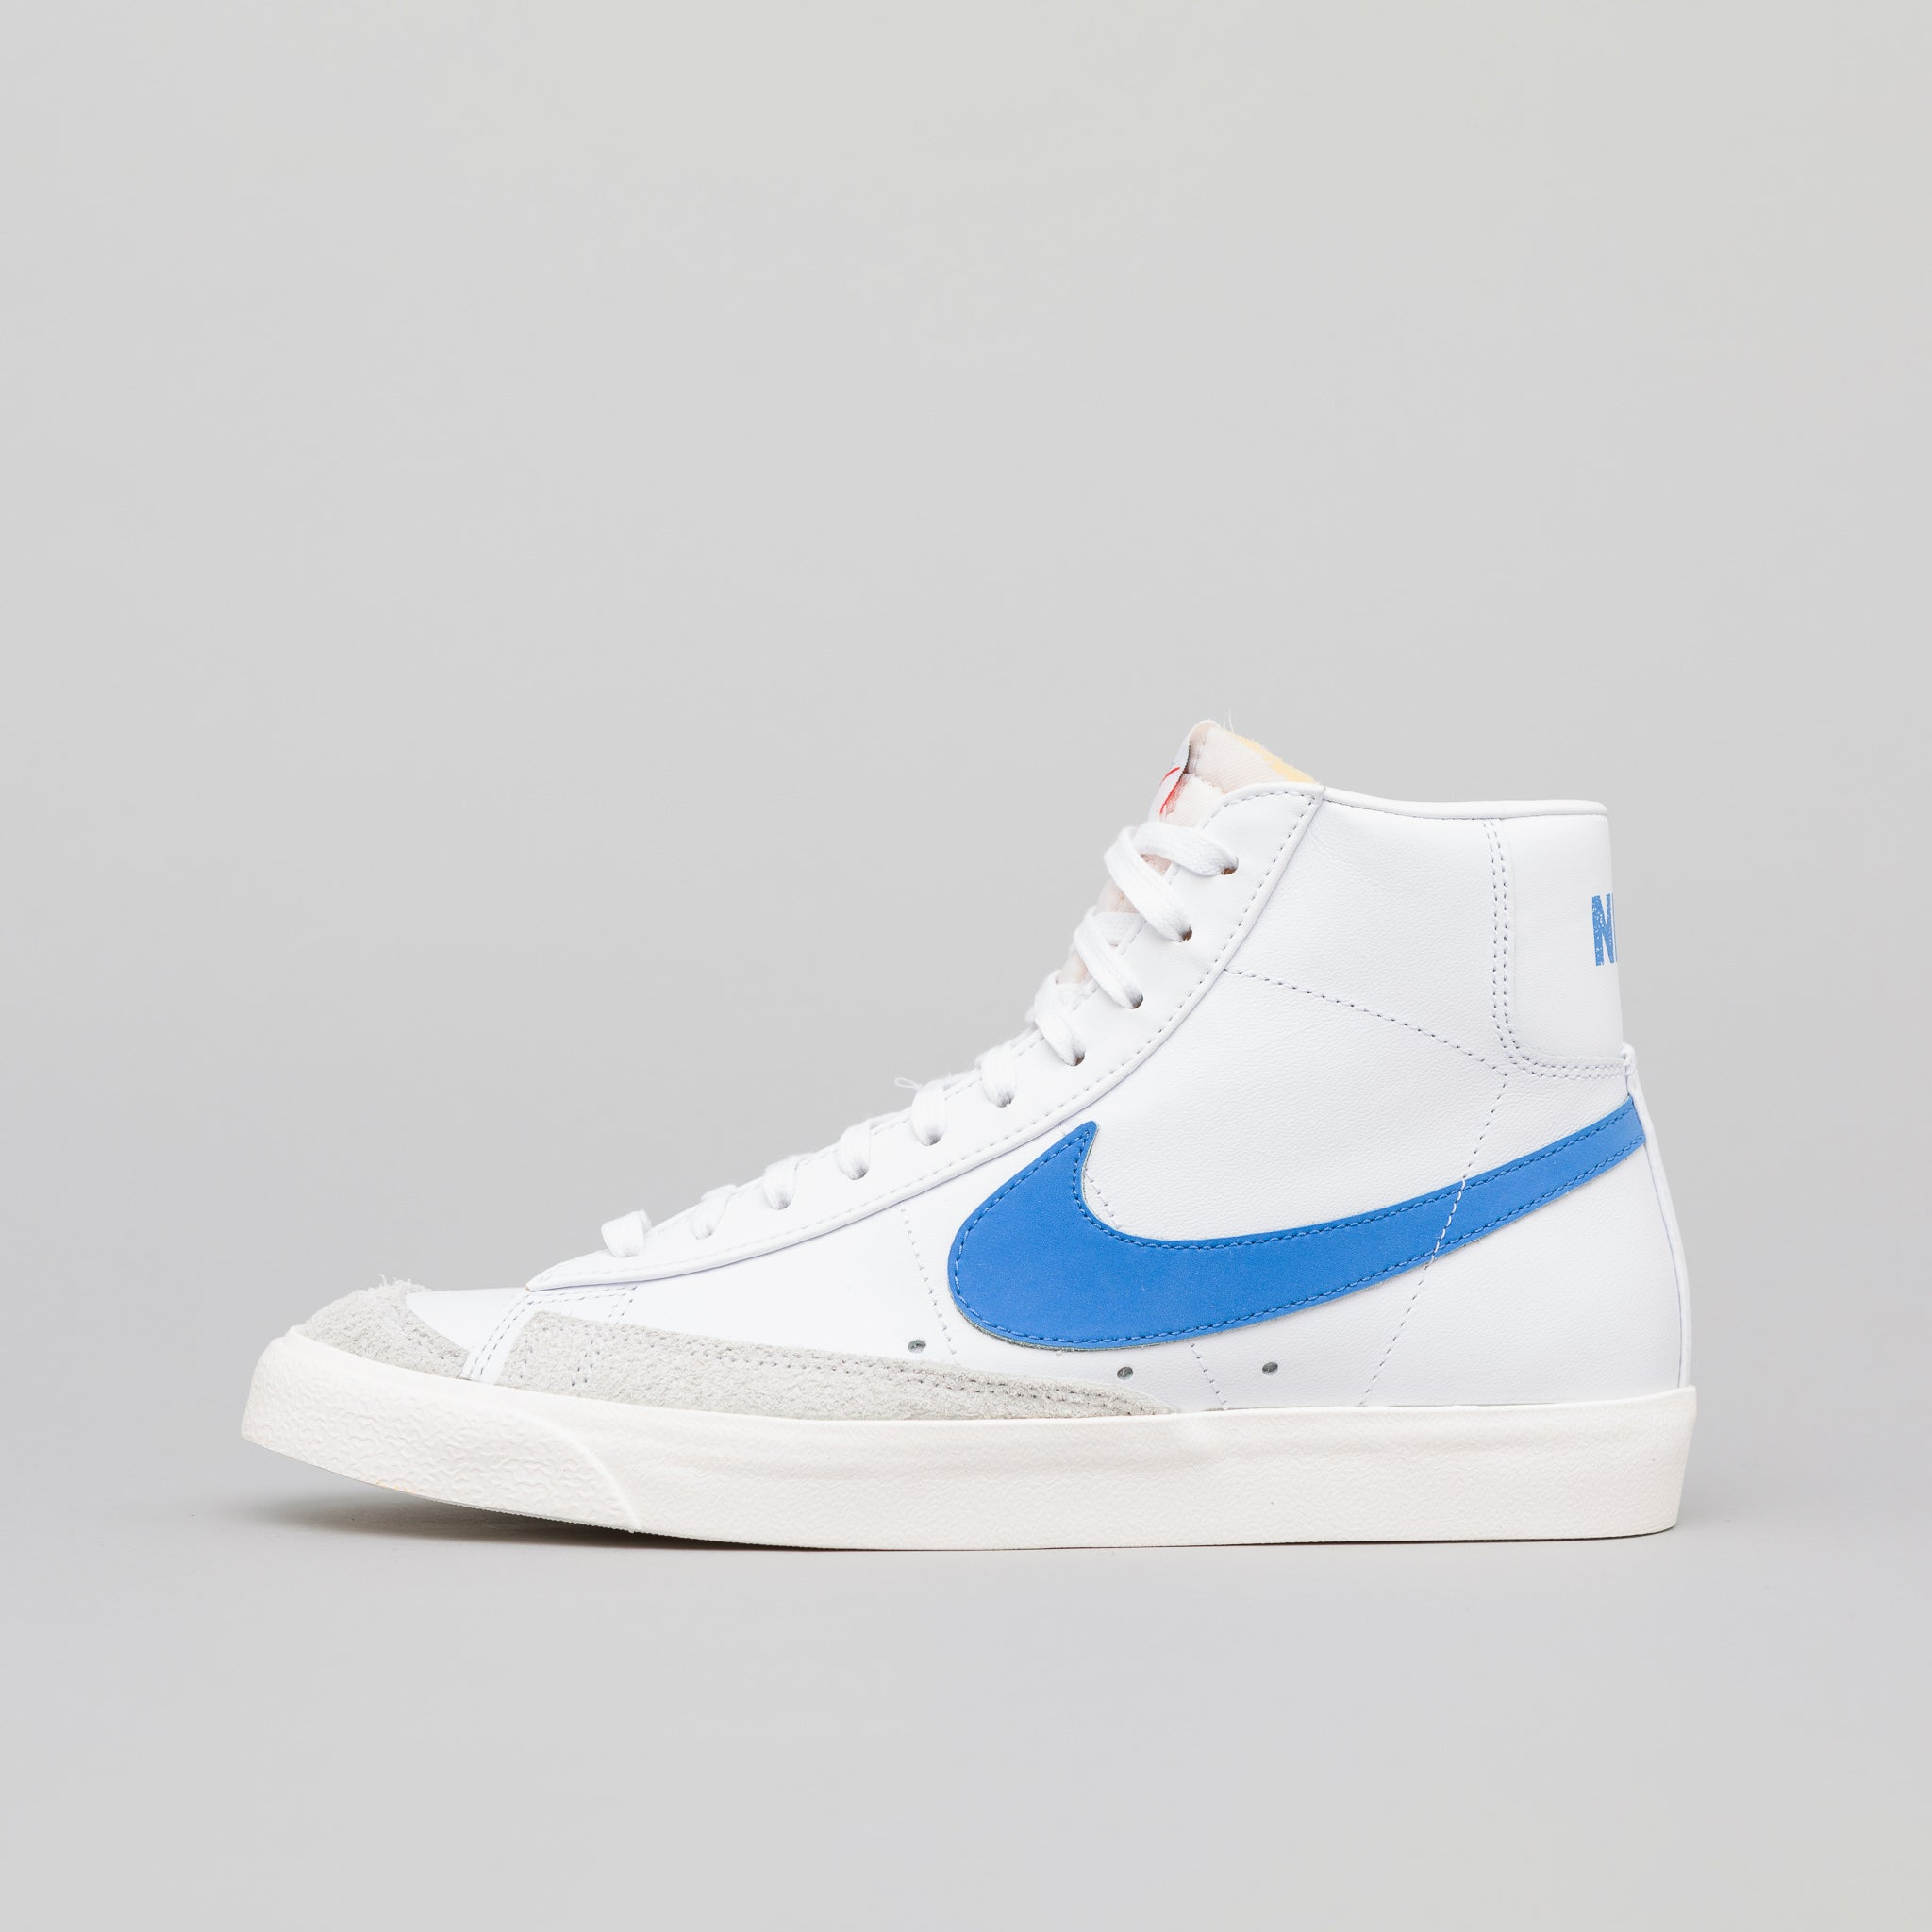 premium selection 588f2 4dd2c Blazer Mid 77 Vintage in Pacific Blue. Nike